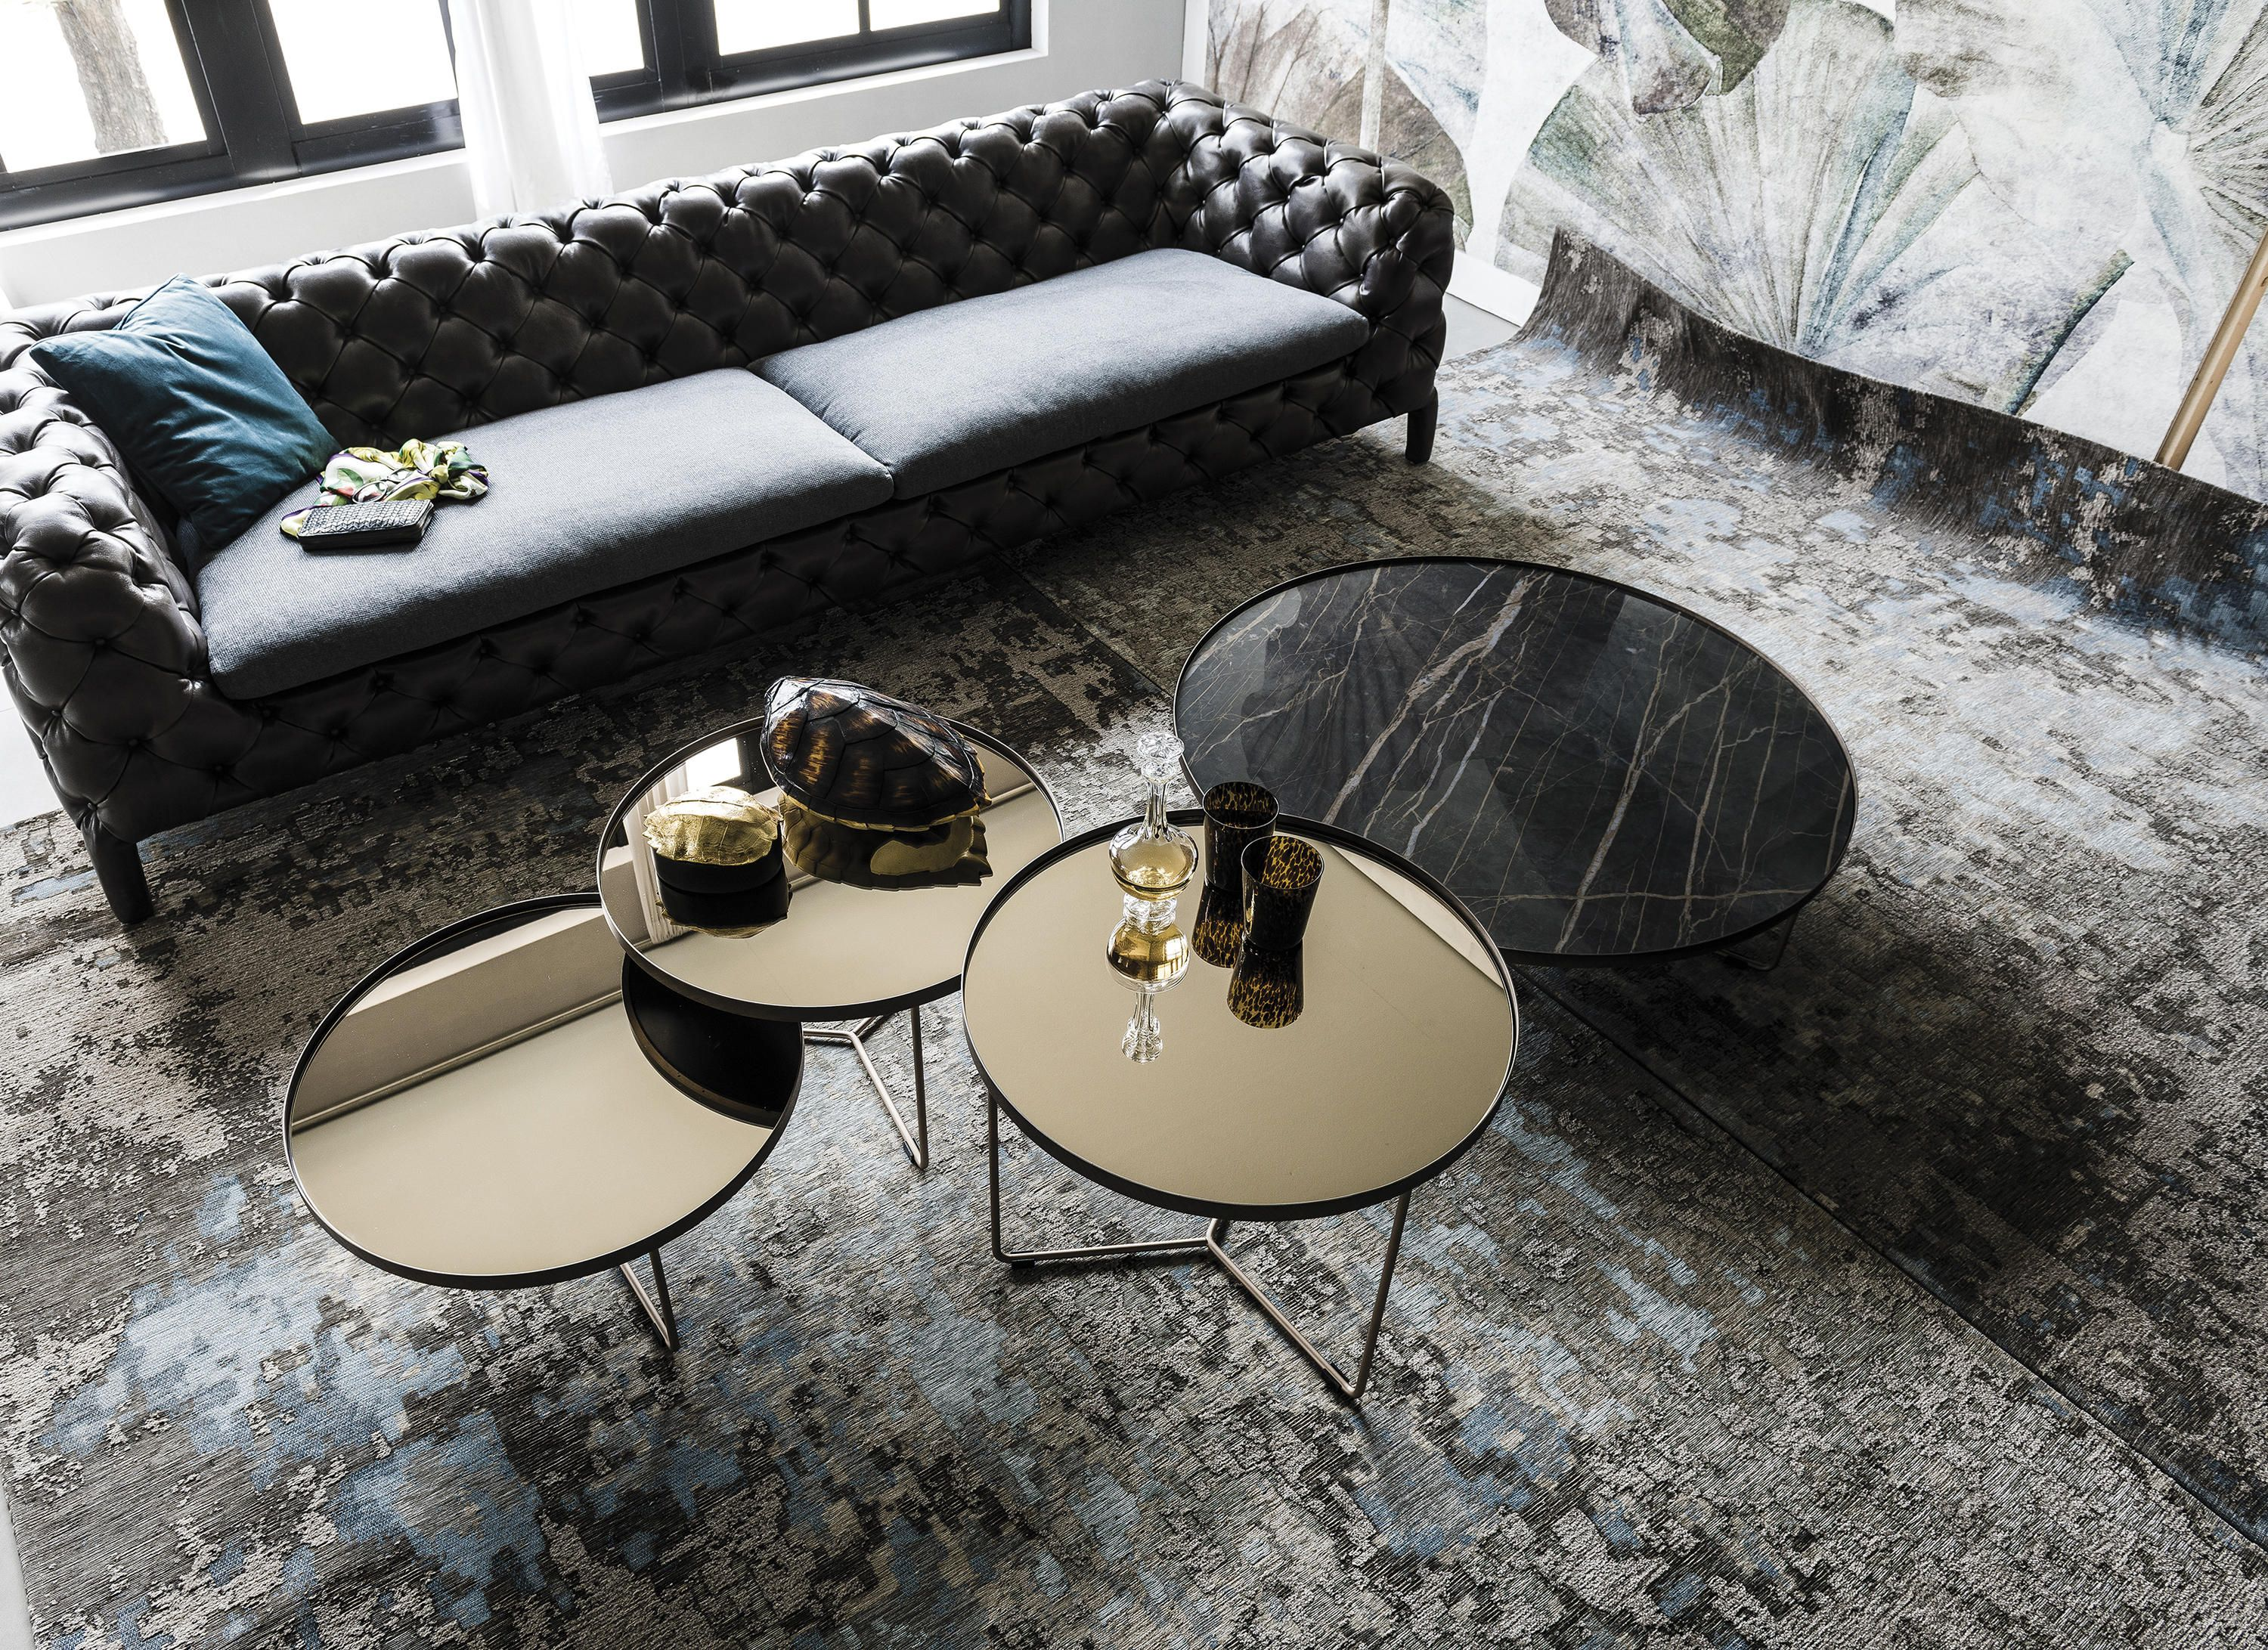 Billy Designer Coffee Tables From Cattelan Italia All Information High Resolution Images Cads Catalog Avec Images Table Basse Deco Table Basse Table Basse Design